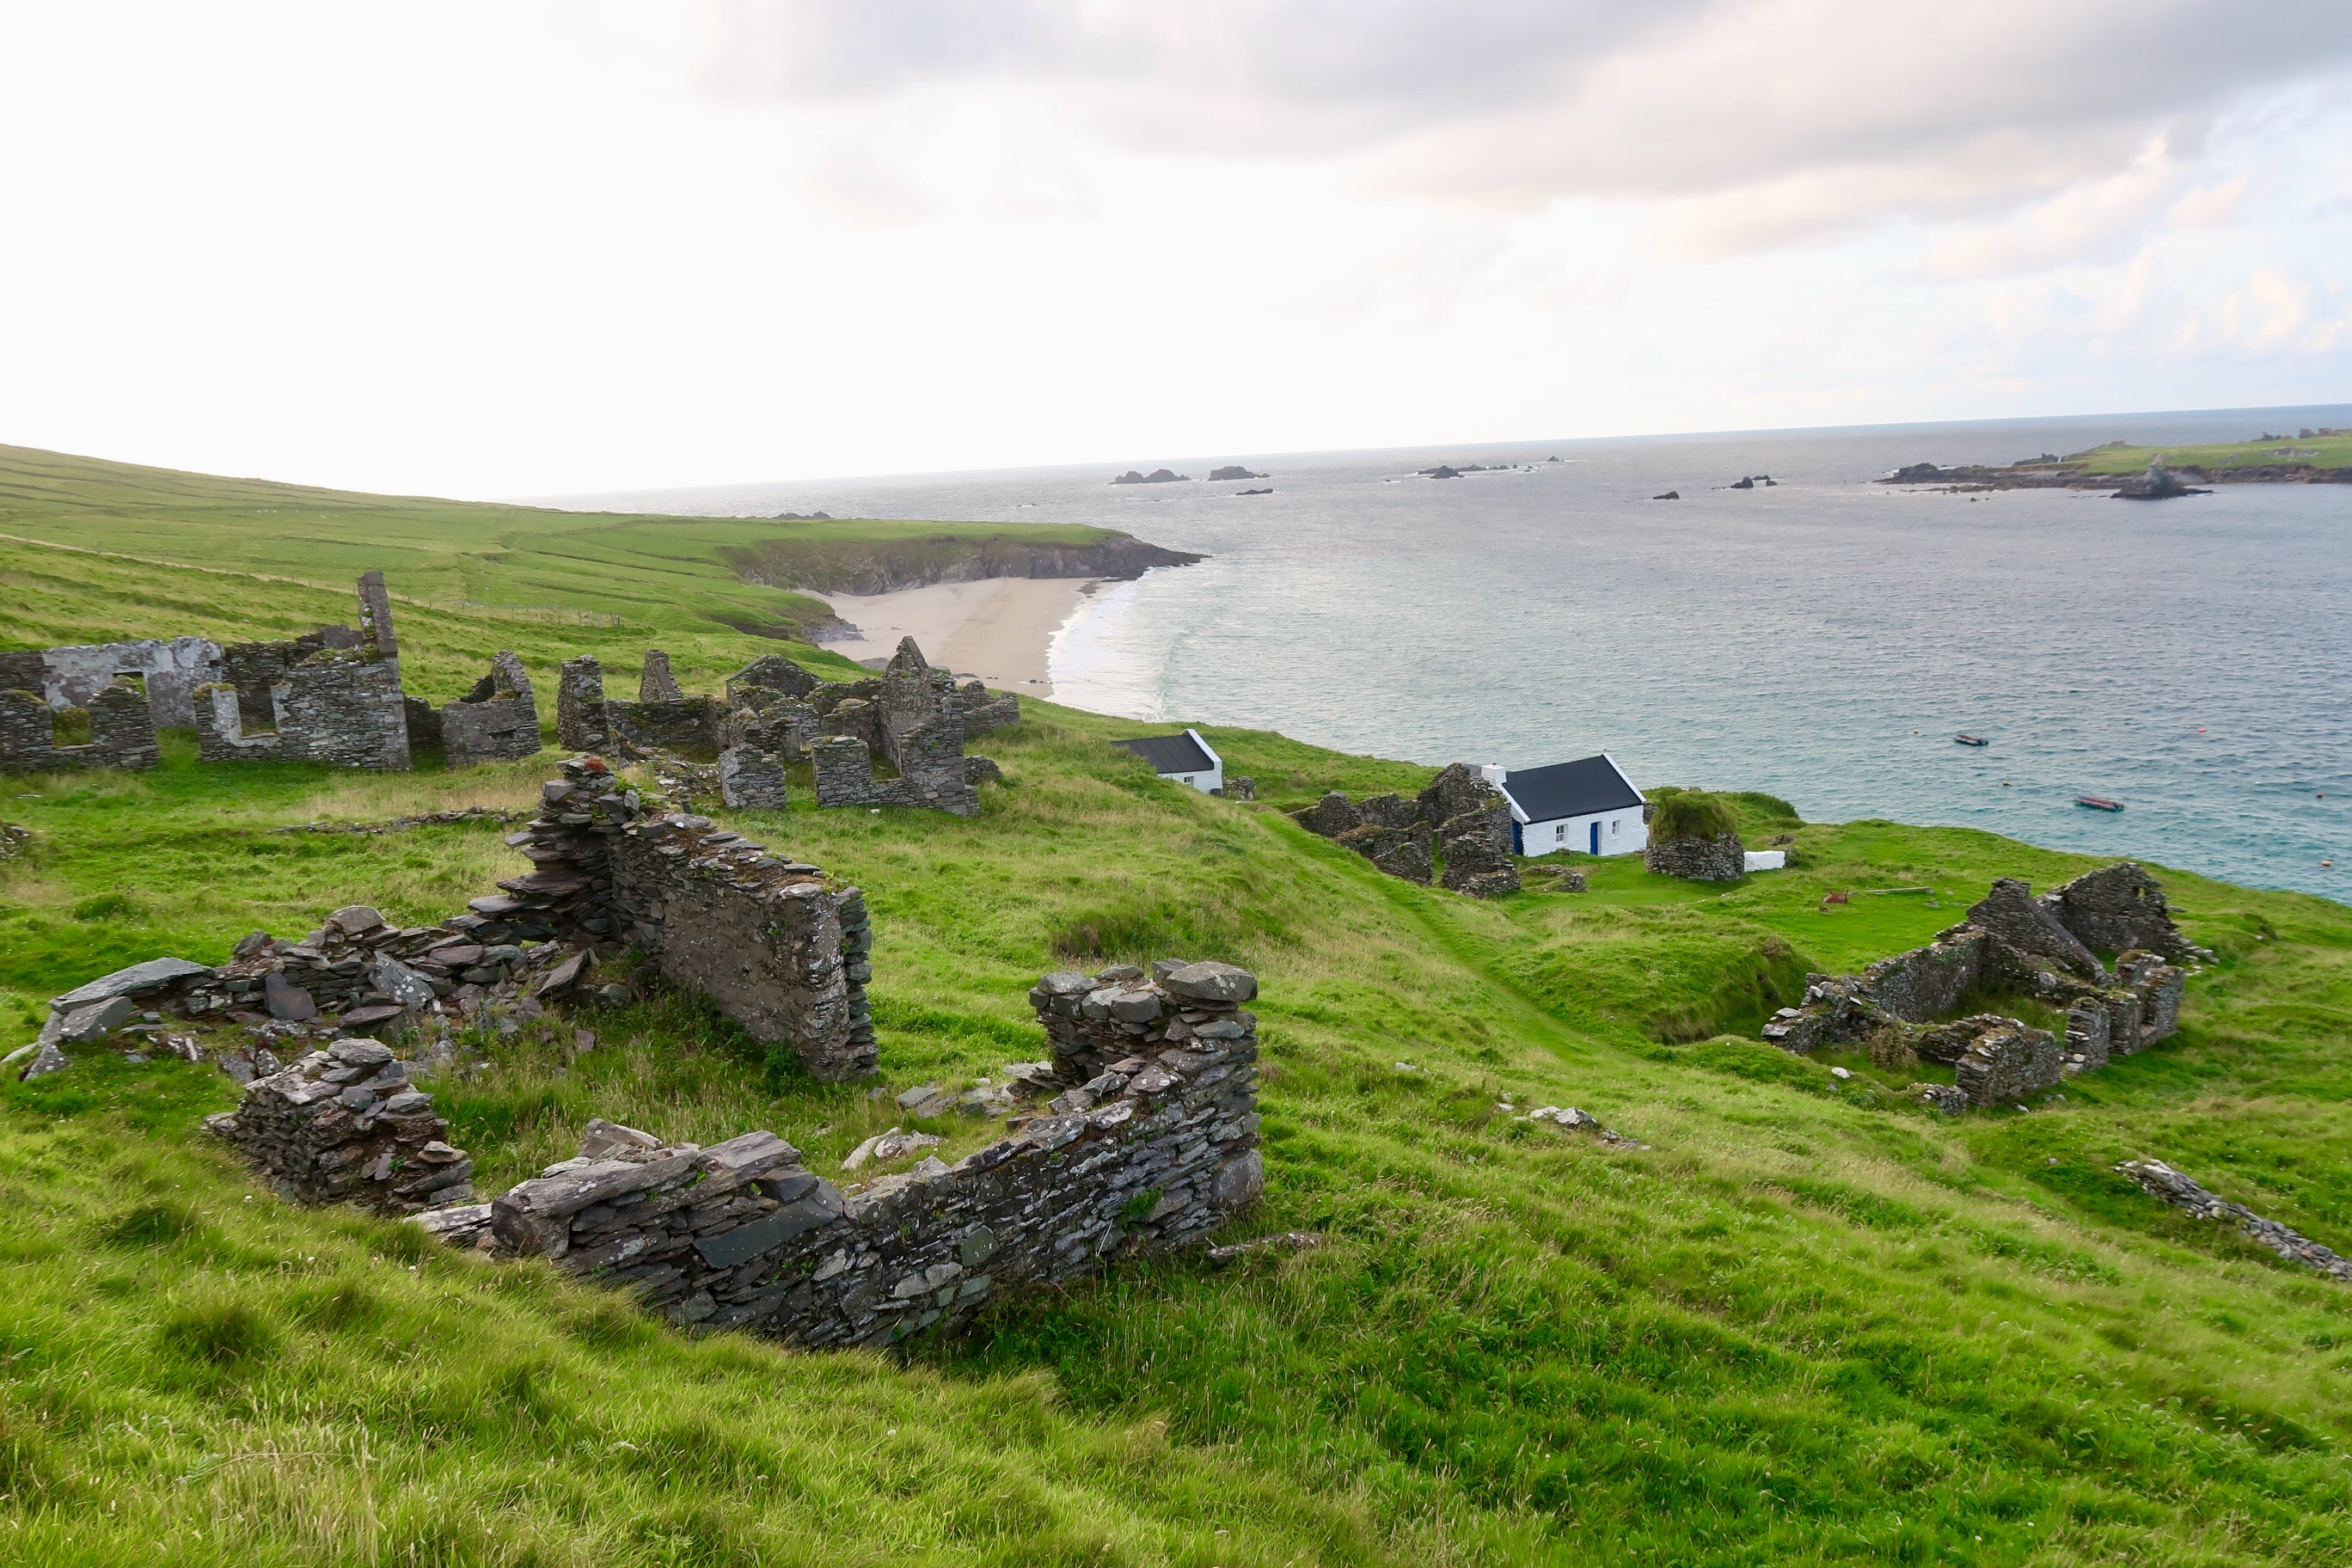 Ruins above the only small village on the Great Blasket Island